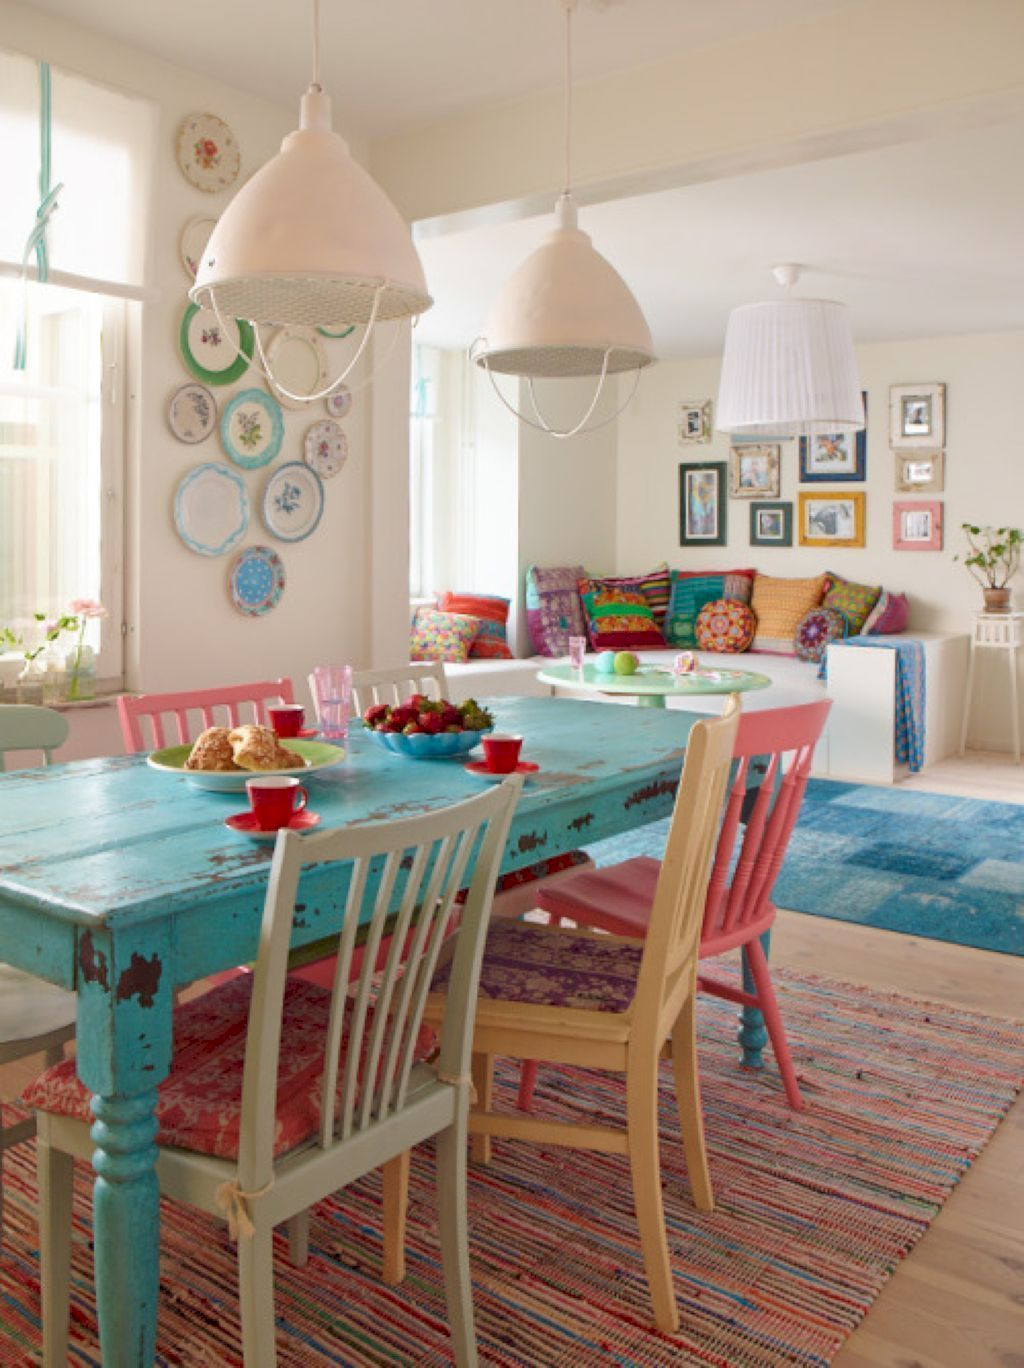 Enchanting bohemian dining room decorating ideas pictures best 31 smart and beauty bohemian dining room decor ideas room decor dzzzfo